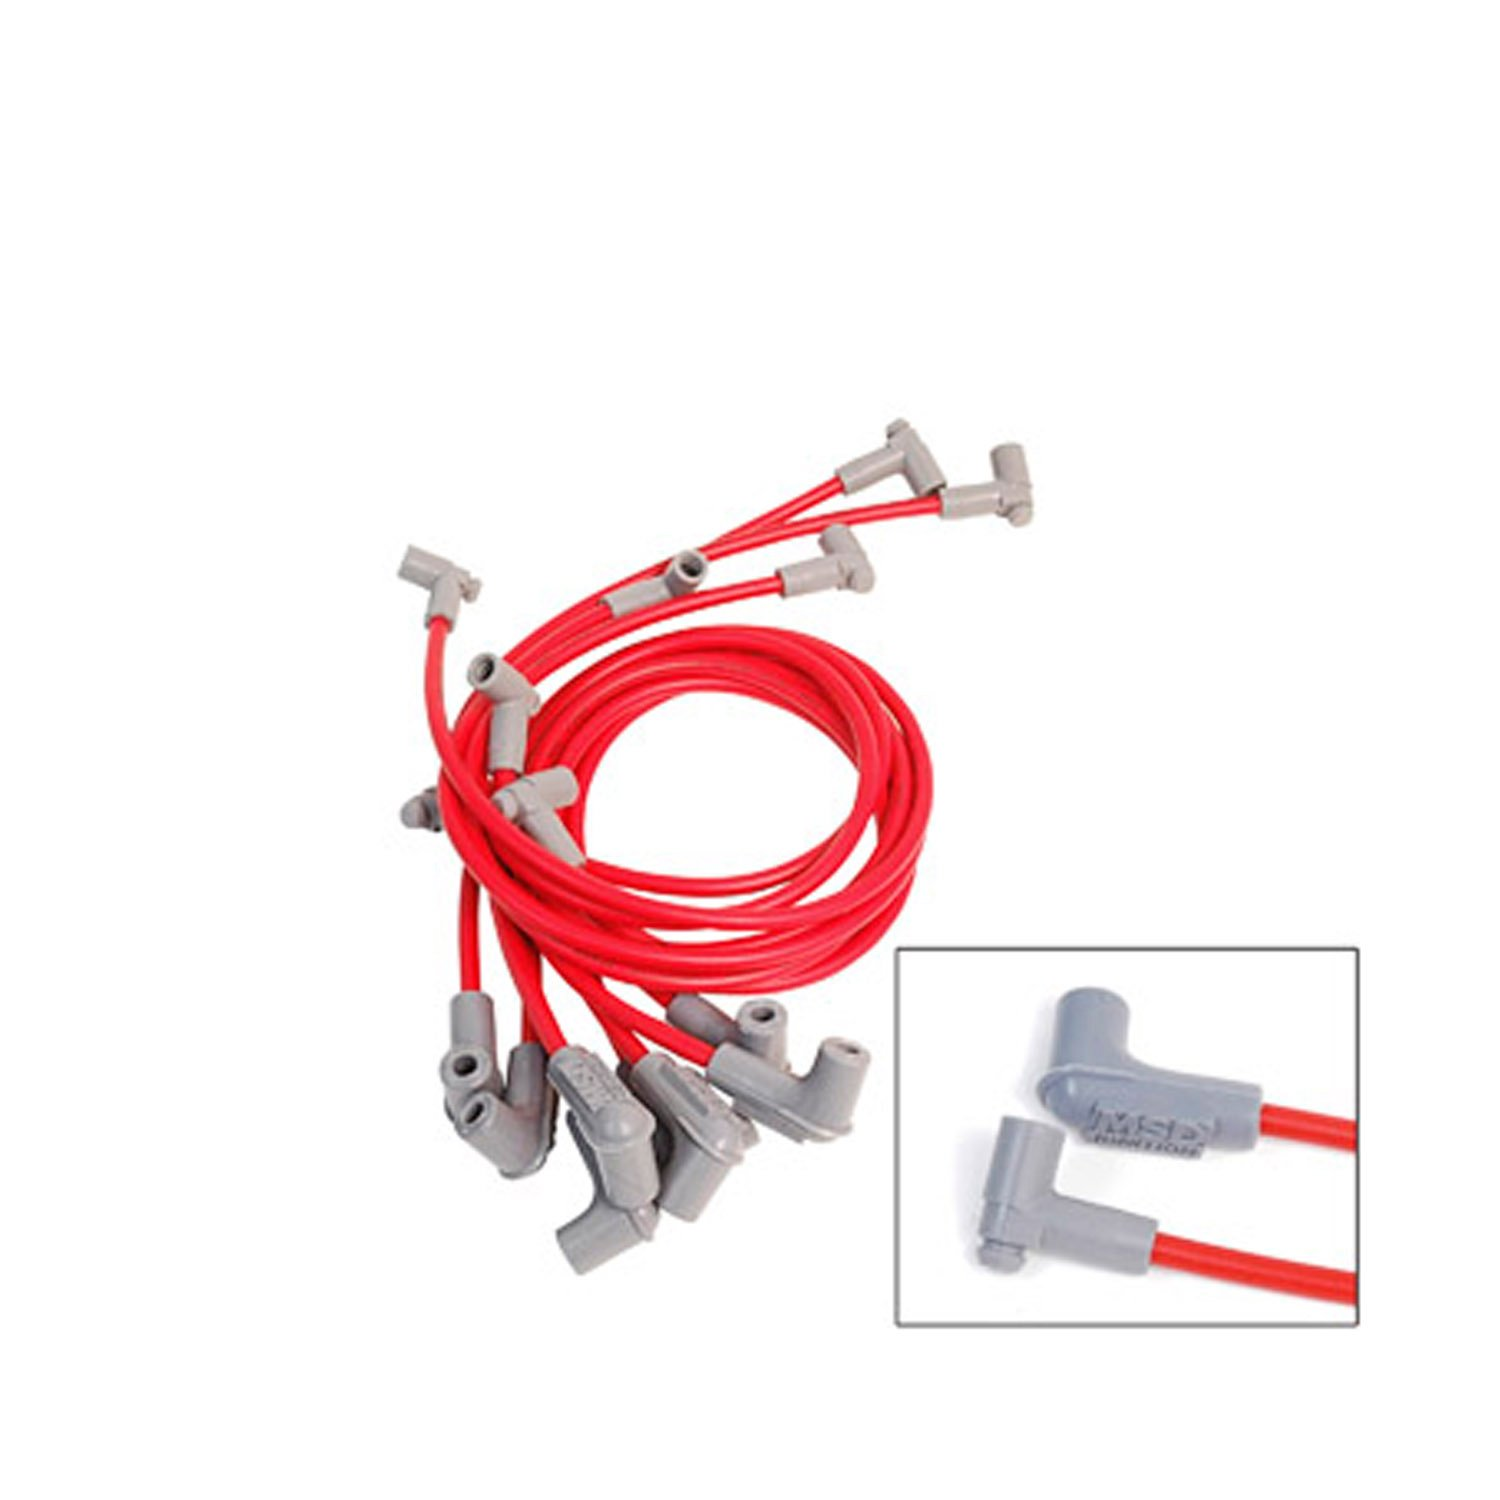 31549 - Red Super Conductor Wire Set, Chevy Sprint Car Image